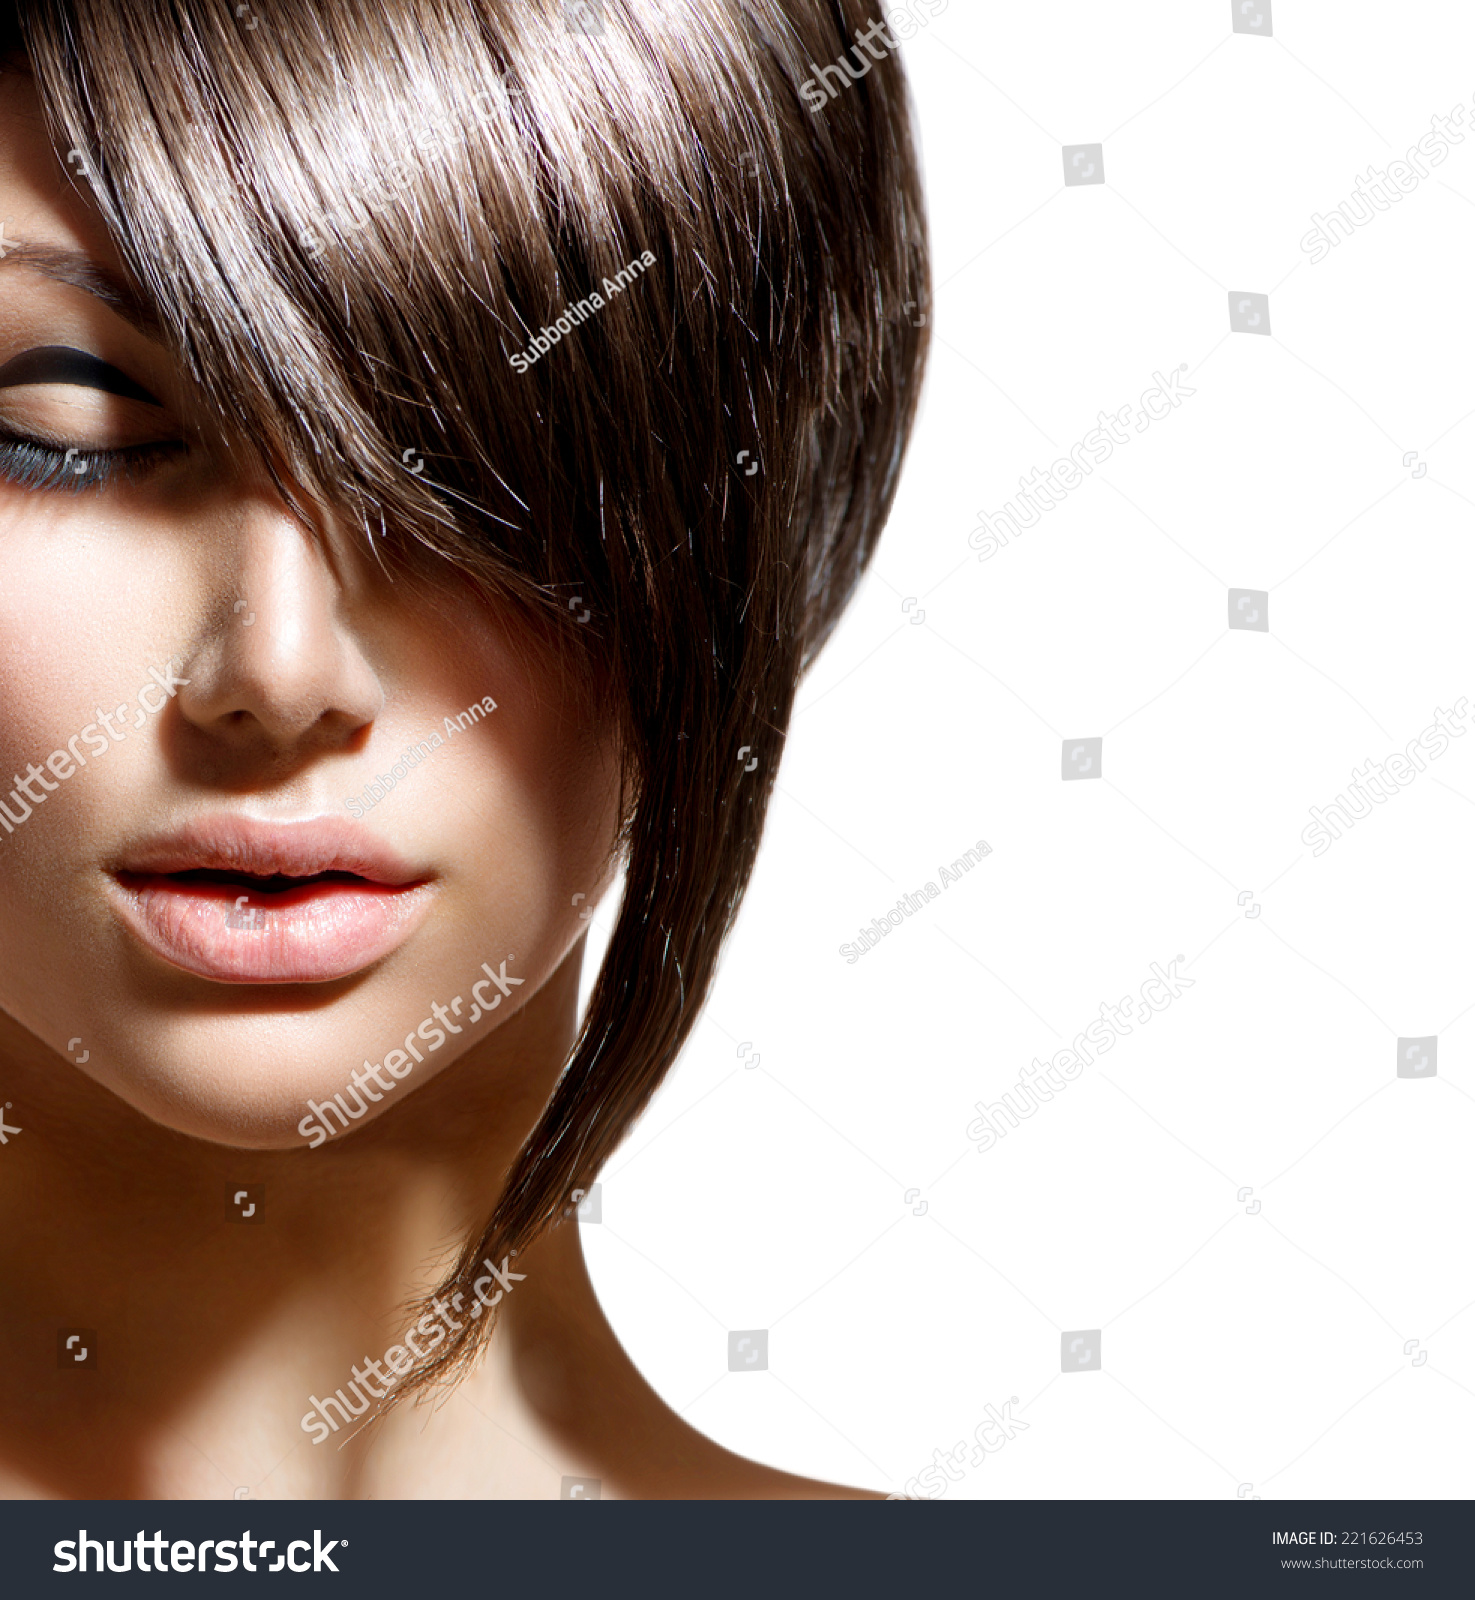 Fashion Haircut Hairstyle Stylish Fringe Short Stock Photo 221626453 Shutterstock